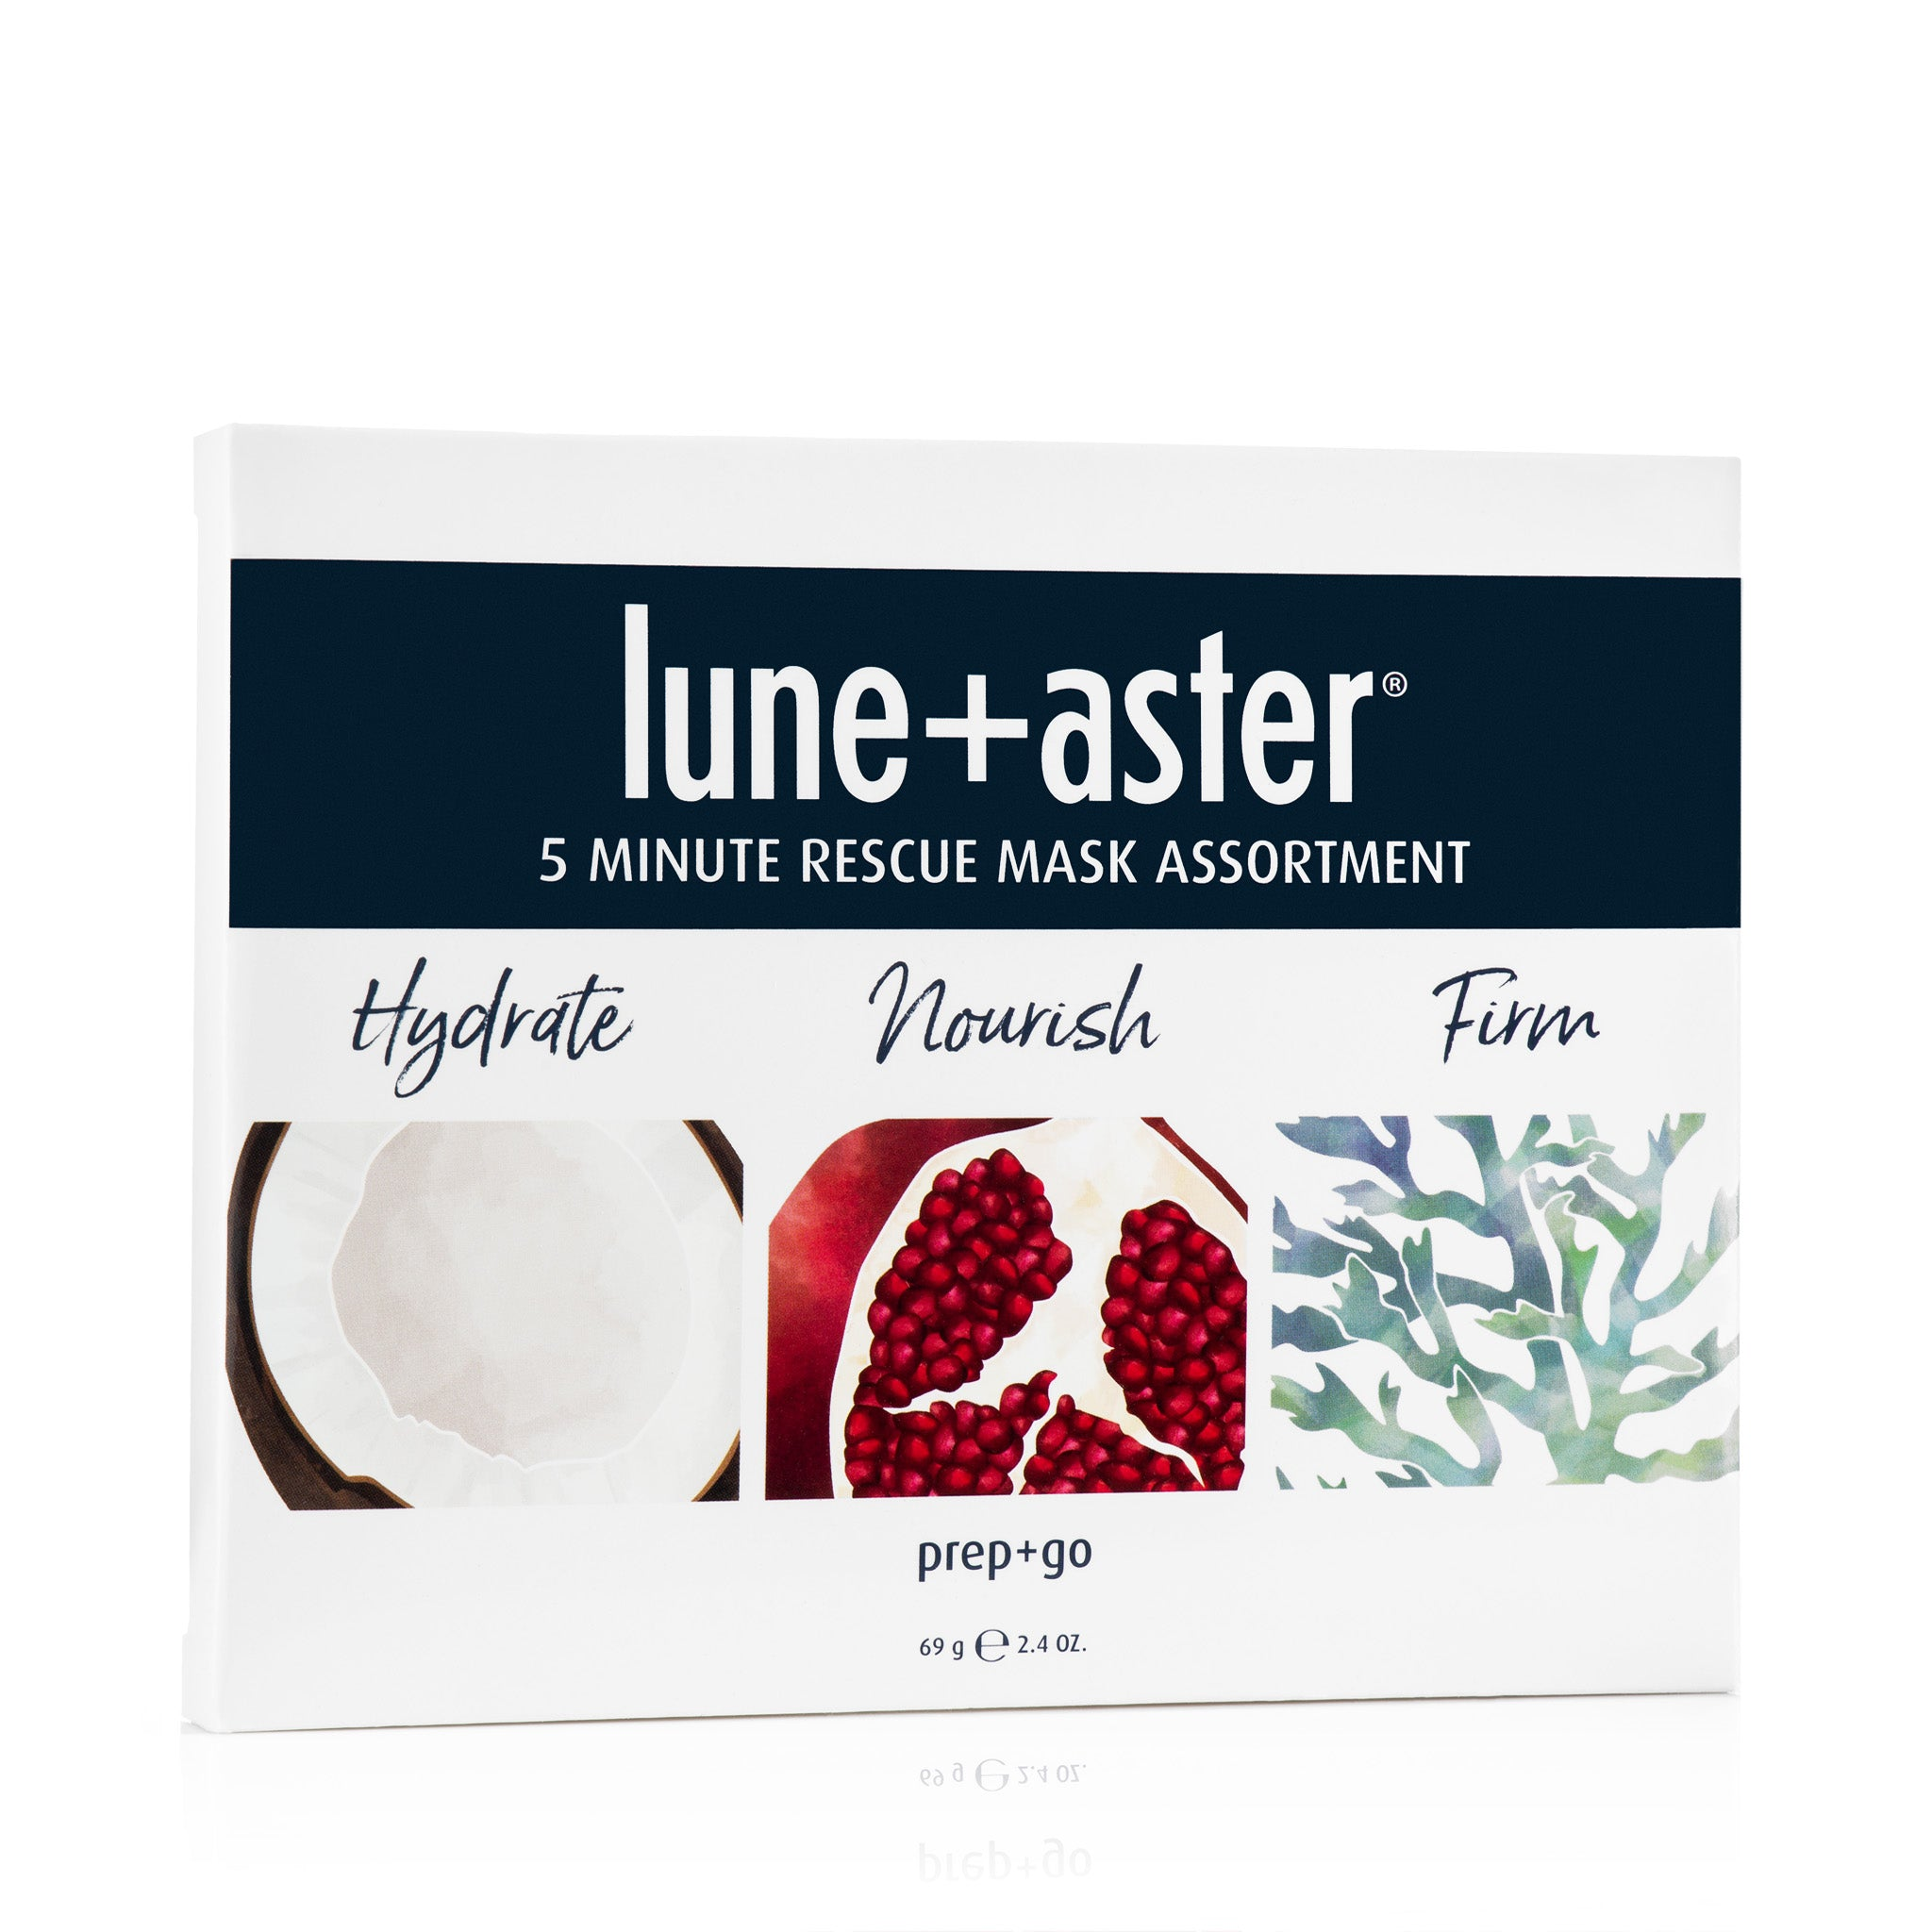 5 Minute Rescue Mask Trio - Hydrate, Firm and Nourish